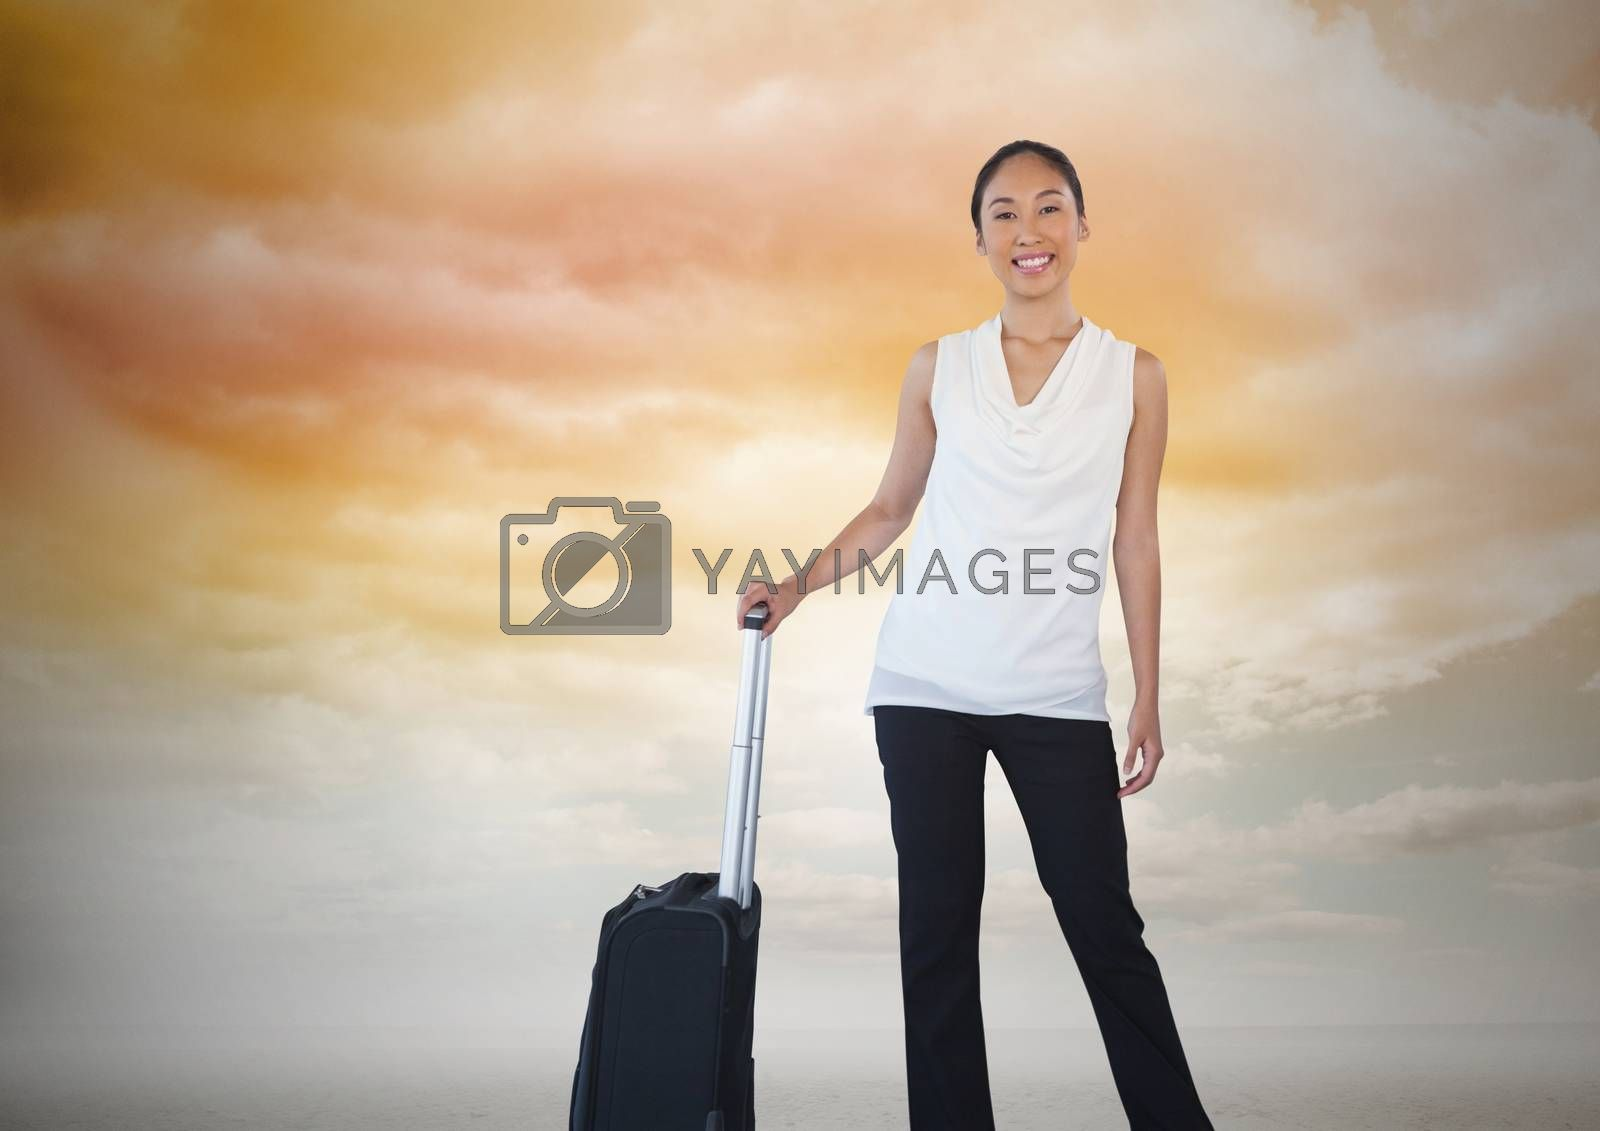 Businesswoman with travel bag and clouds by Wavebreakmedia